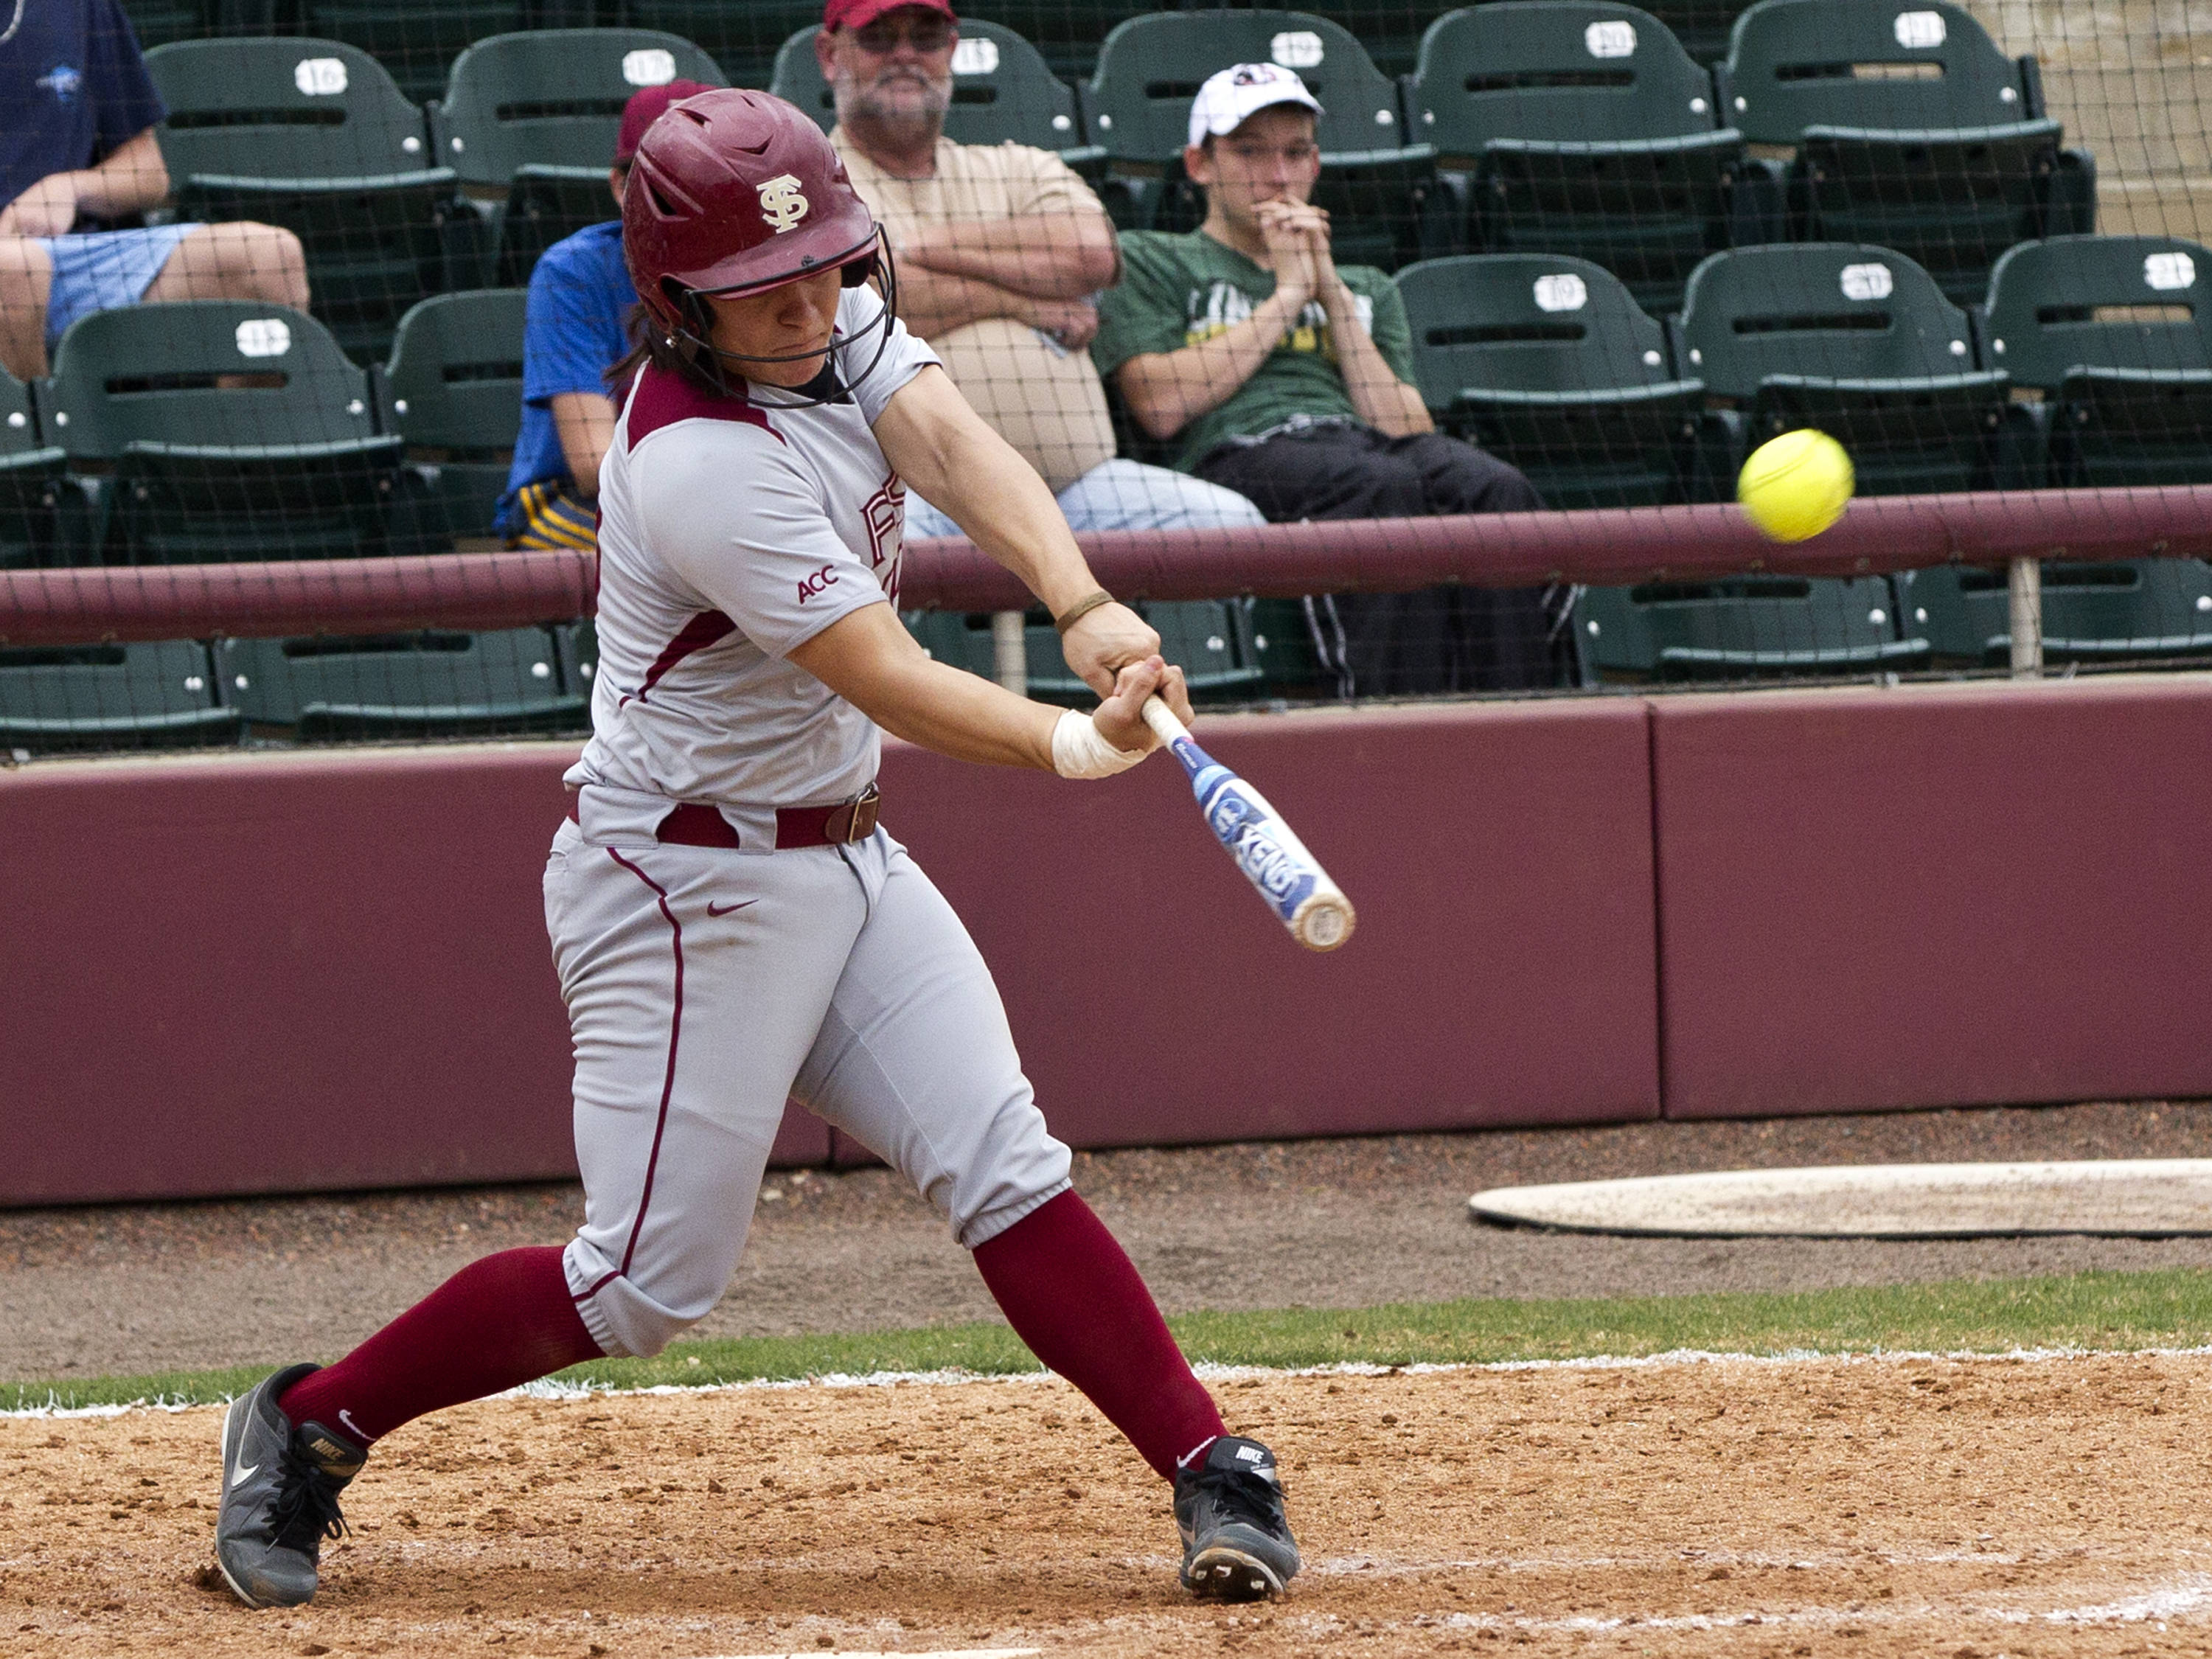 Celeste Gomez (00), launches her eventual game winning home run, FSU vs Minnesota, 03/17/13. (Photo by Steve Musco)